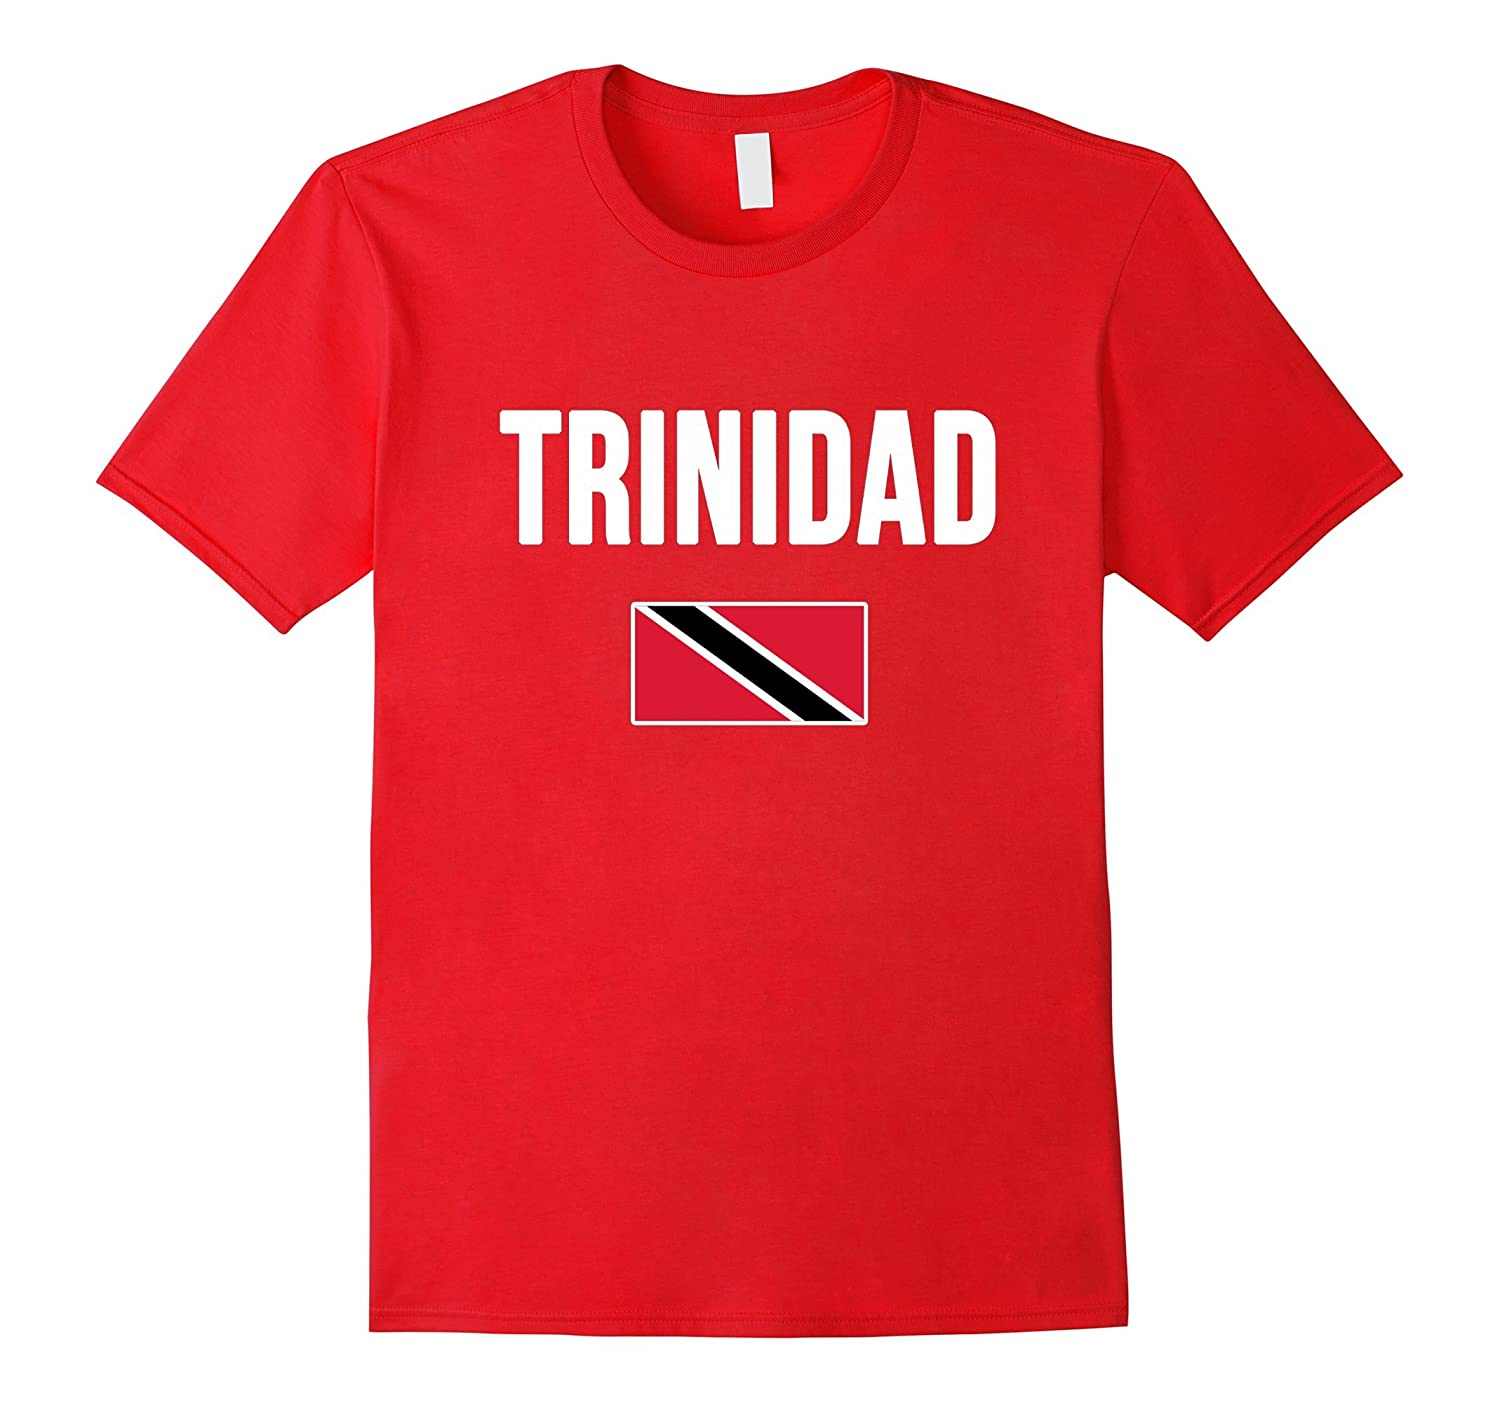 TRINIDAD and TOBAGO T-shirt Trinidadian Flag Tee-CD